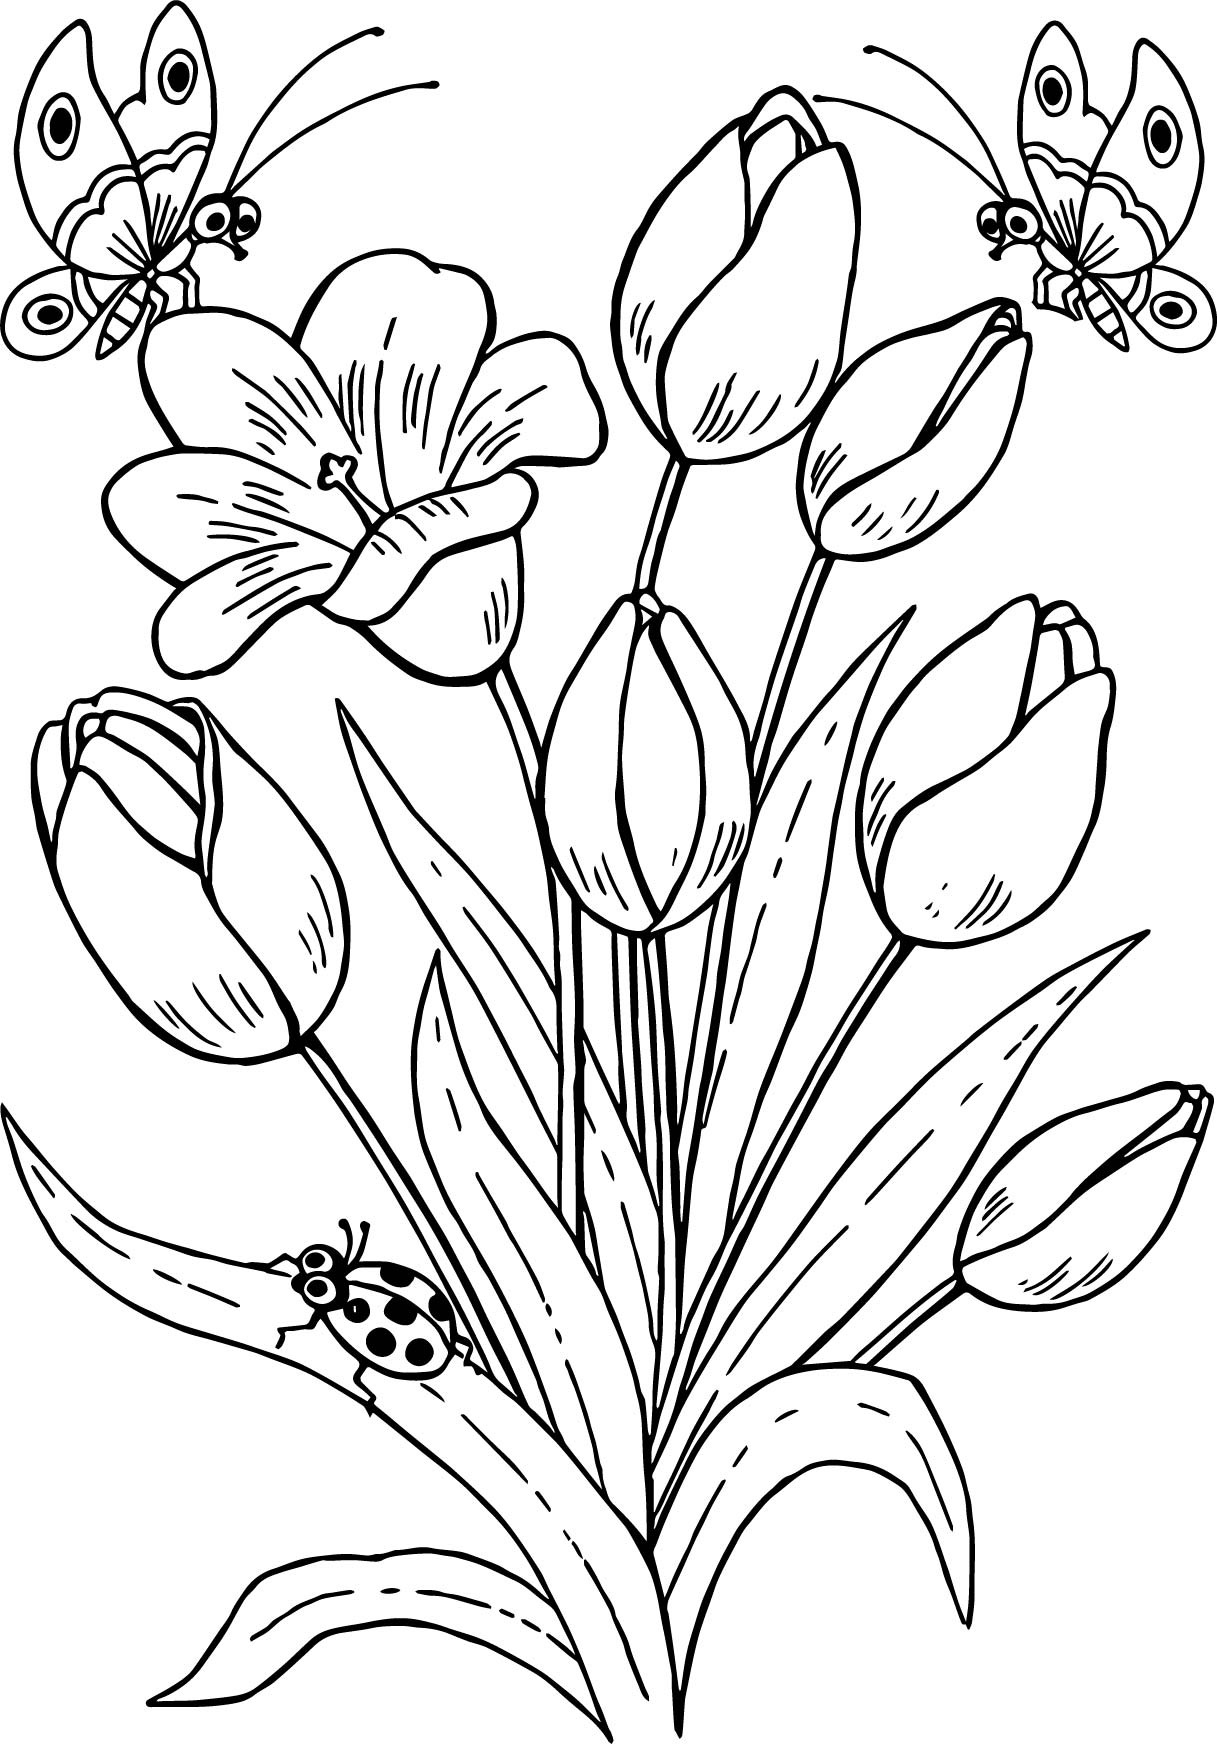 Drawing Butterfly Flowers Tulips Coloring Page ...